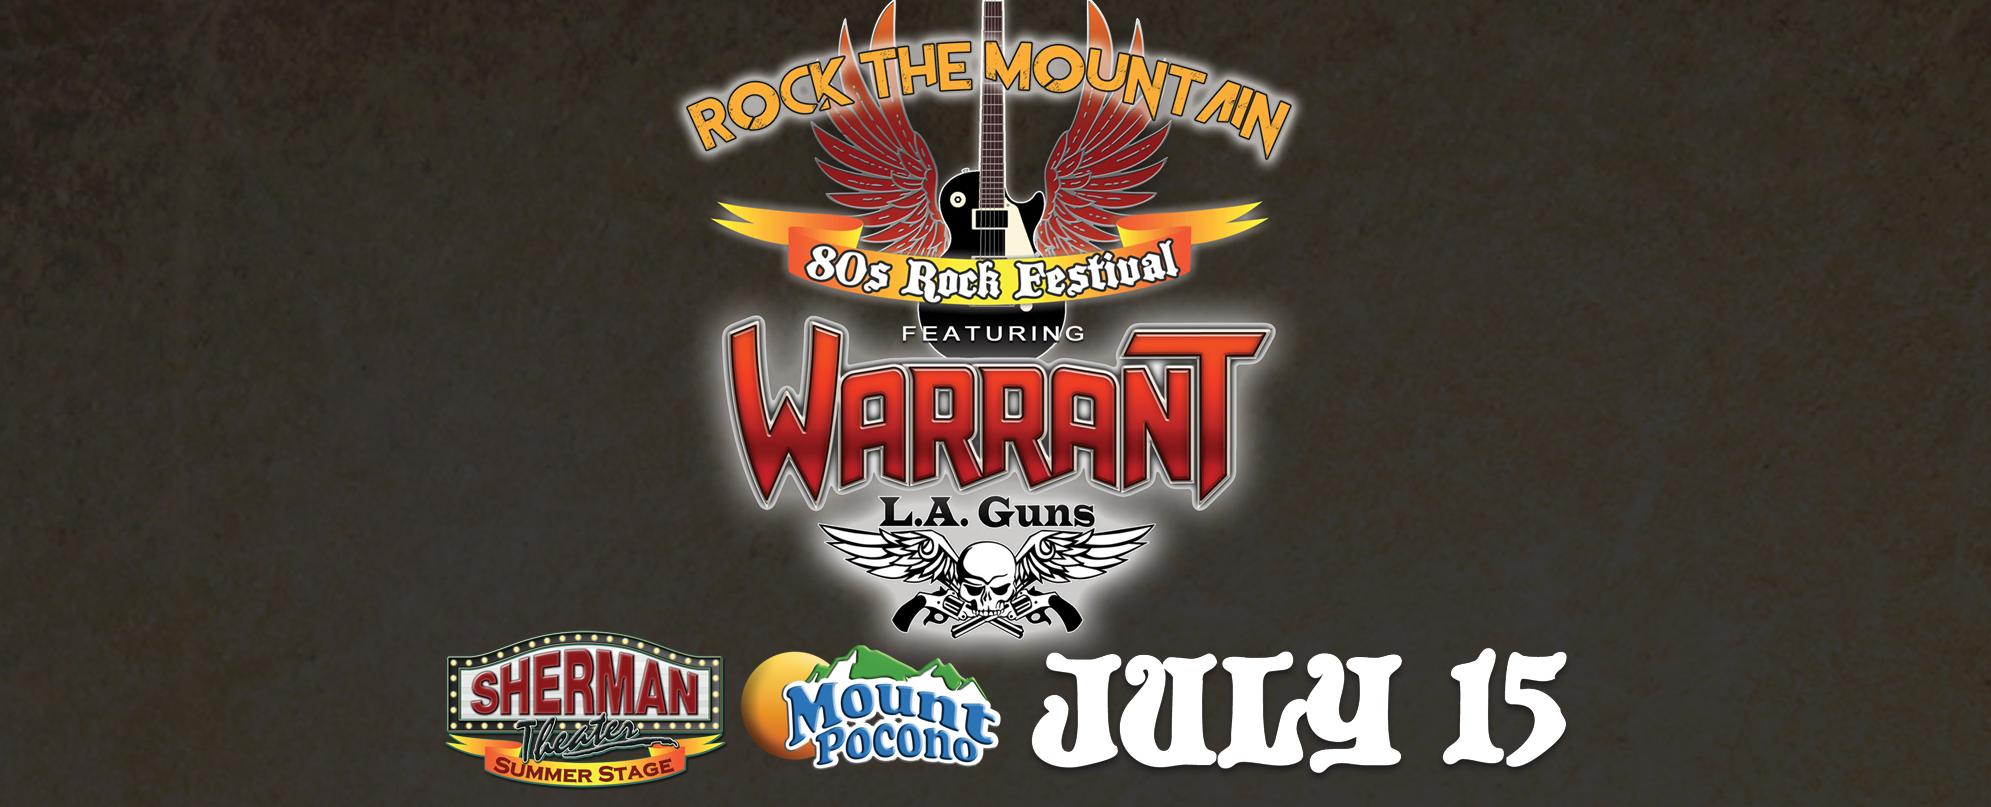 Rock The Mountain 80s Festival ft. Warrant & LA Guns